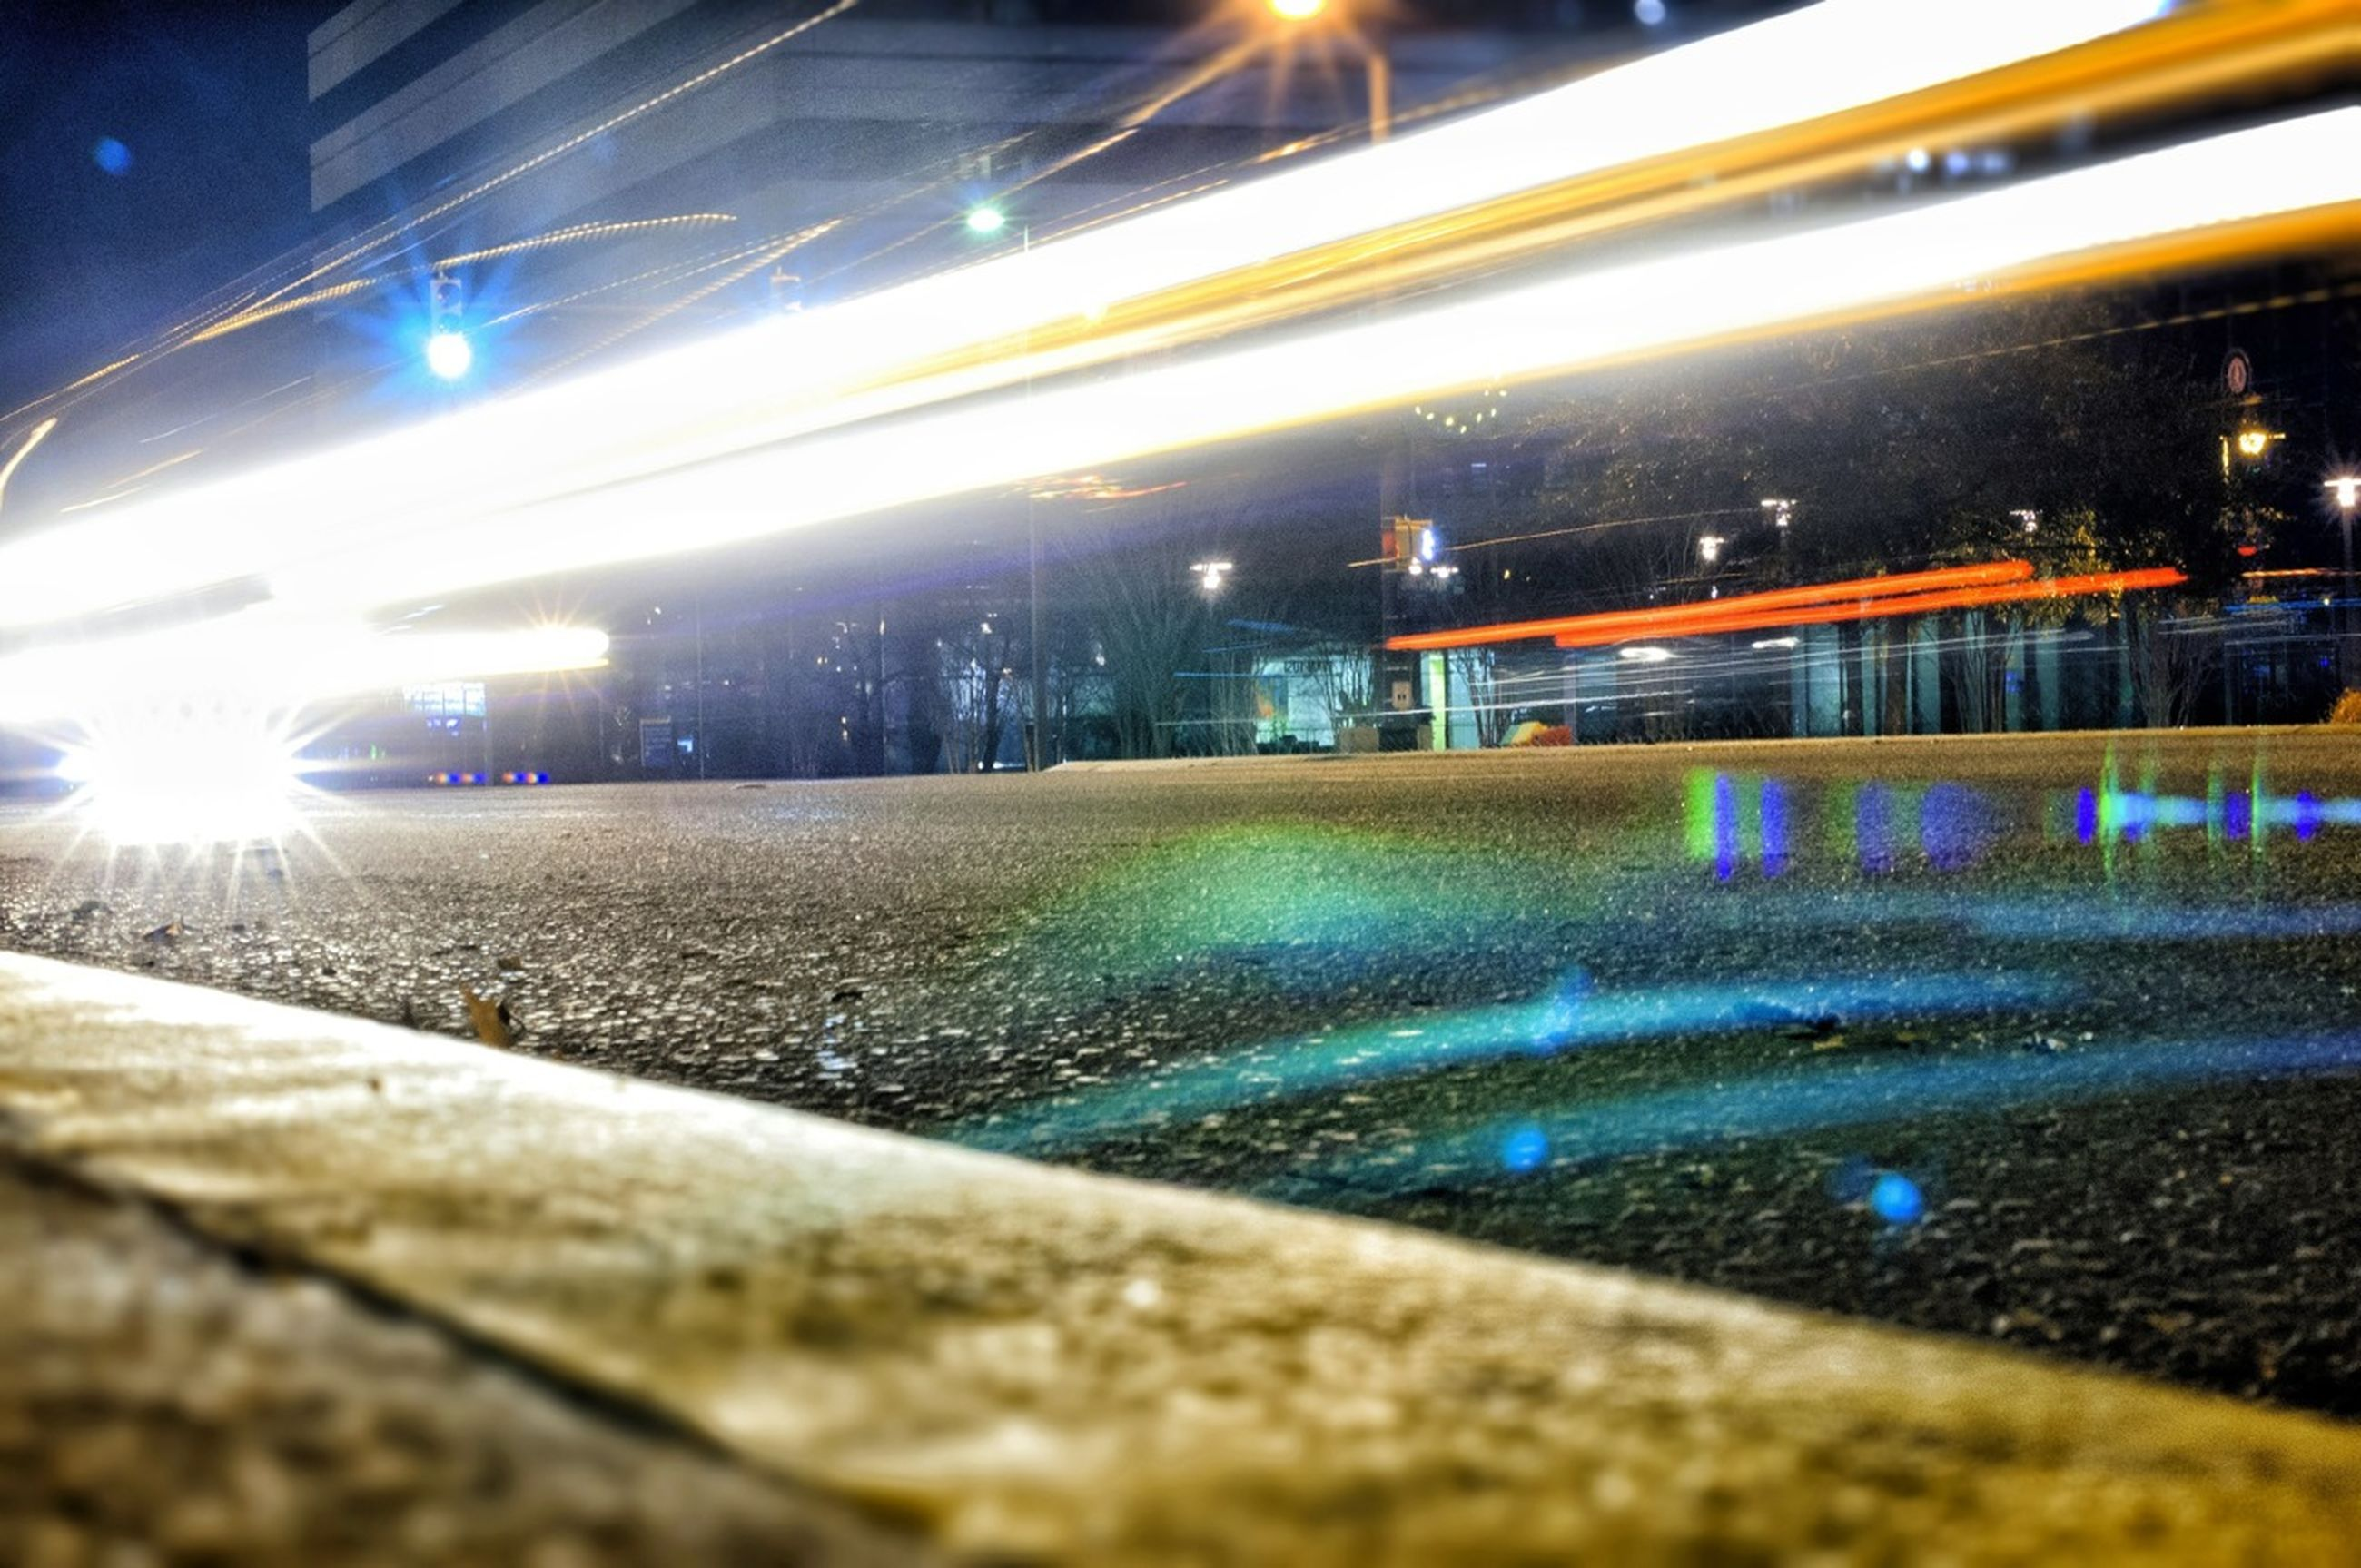 illuminated, night, city, light trail, transportation, long exposure, motion, speed, surface level, blurred motion, built structure, road, building exterior, architecture, street, water, city life, on the move, high angle view, light - natural phenomenon